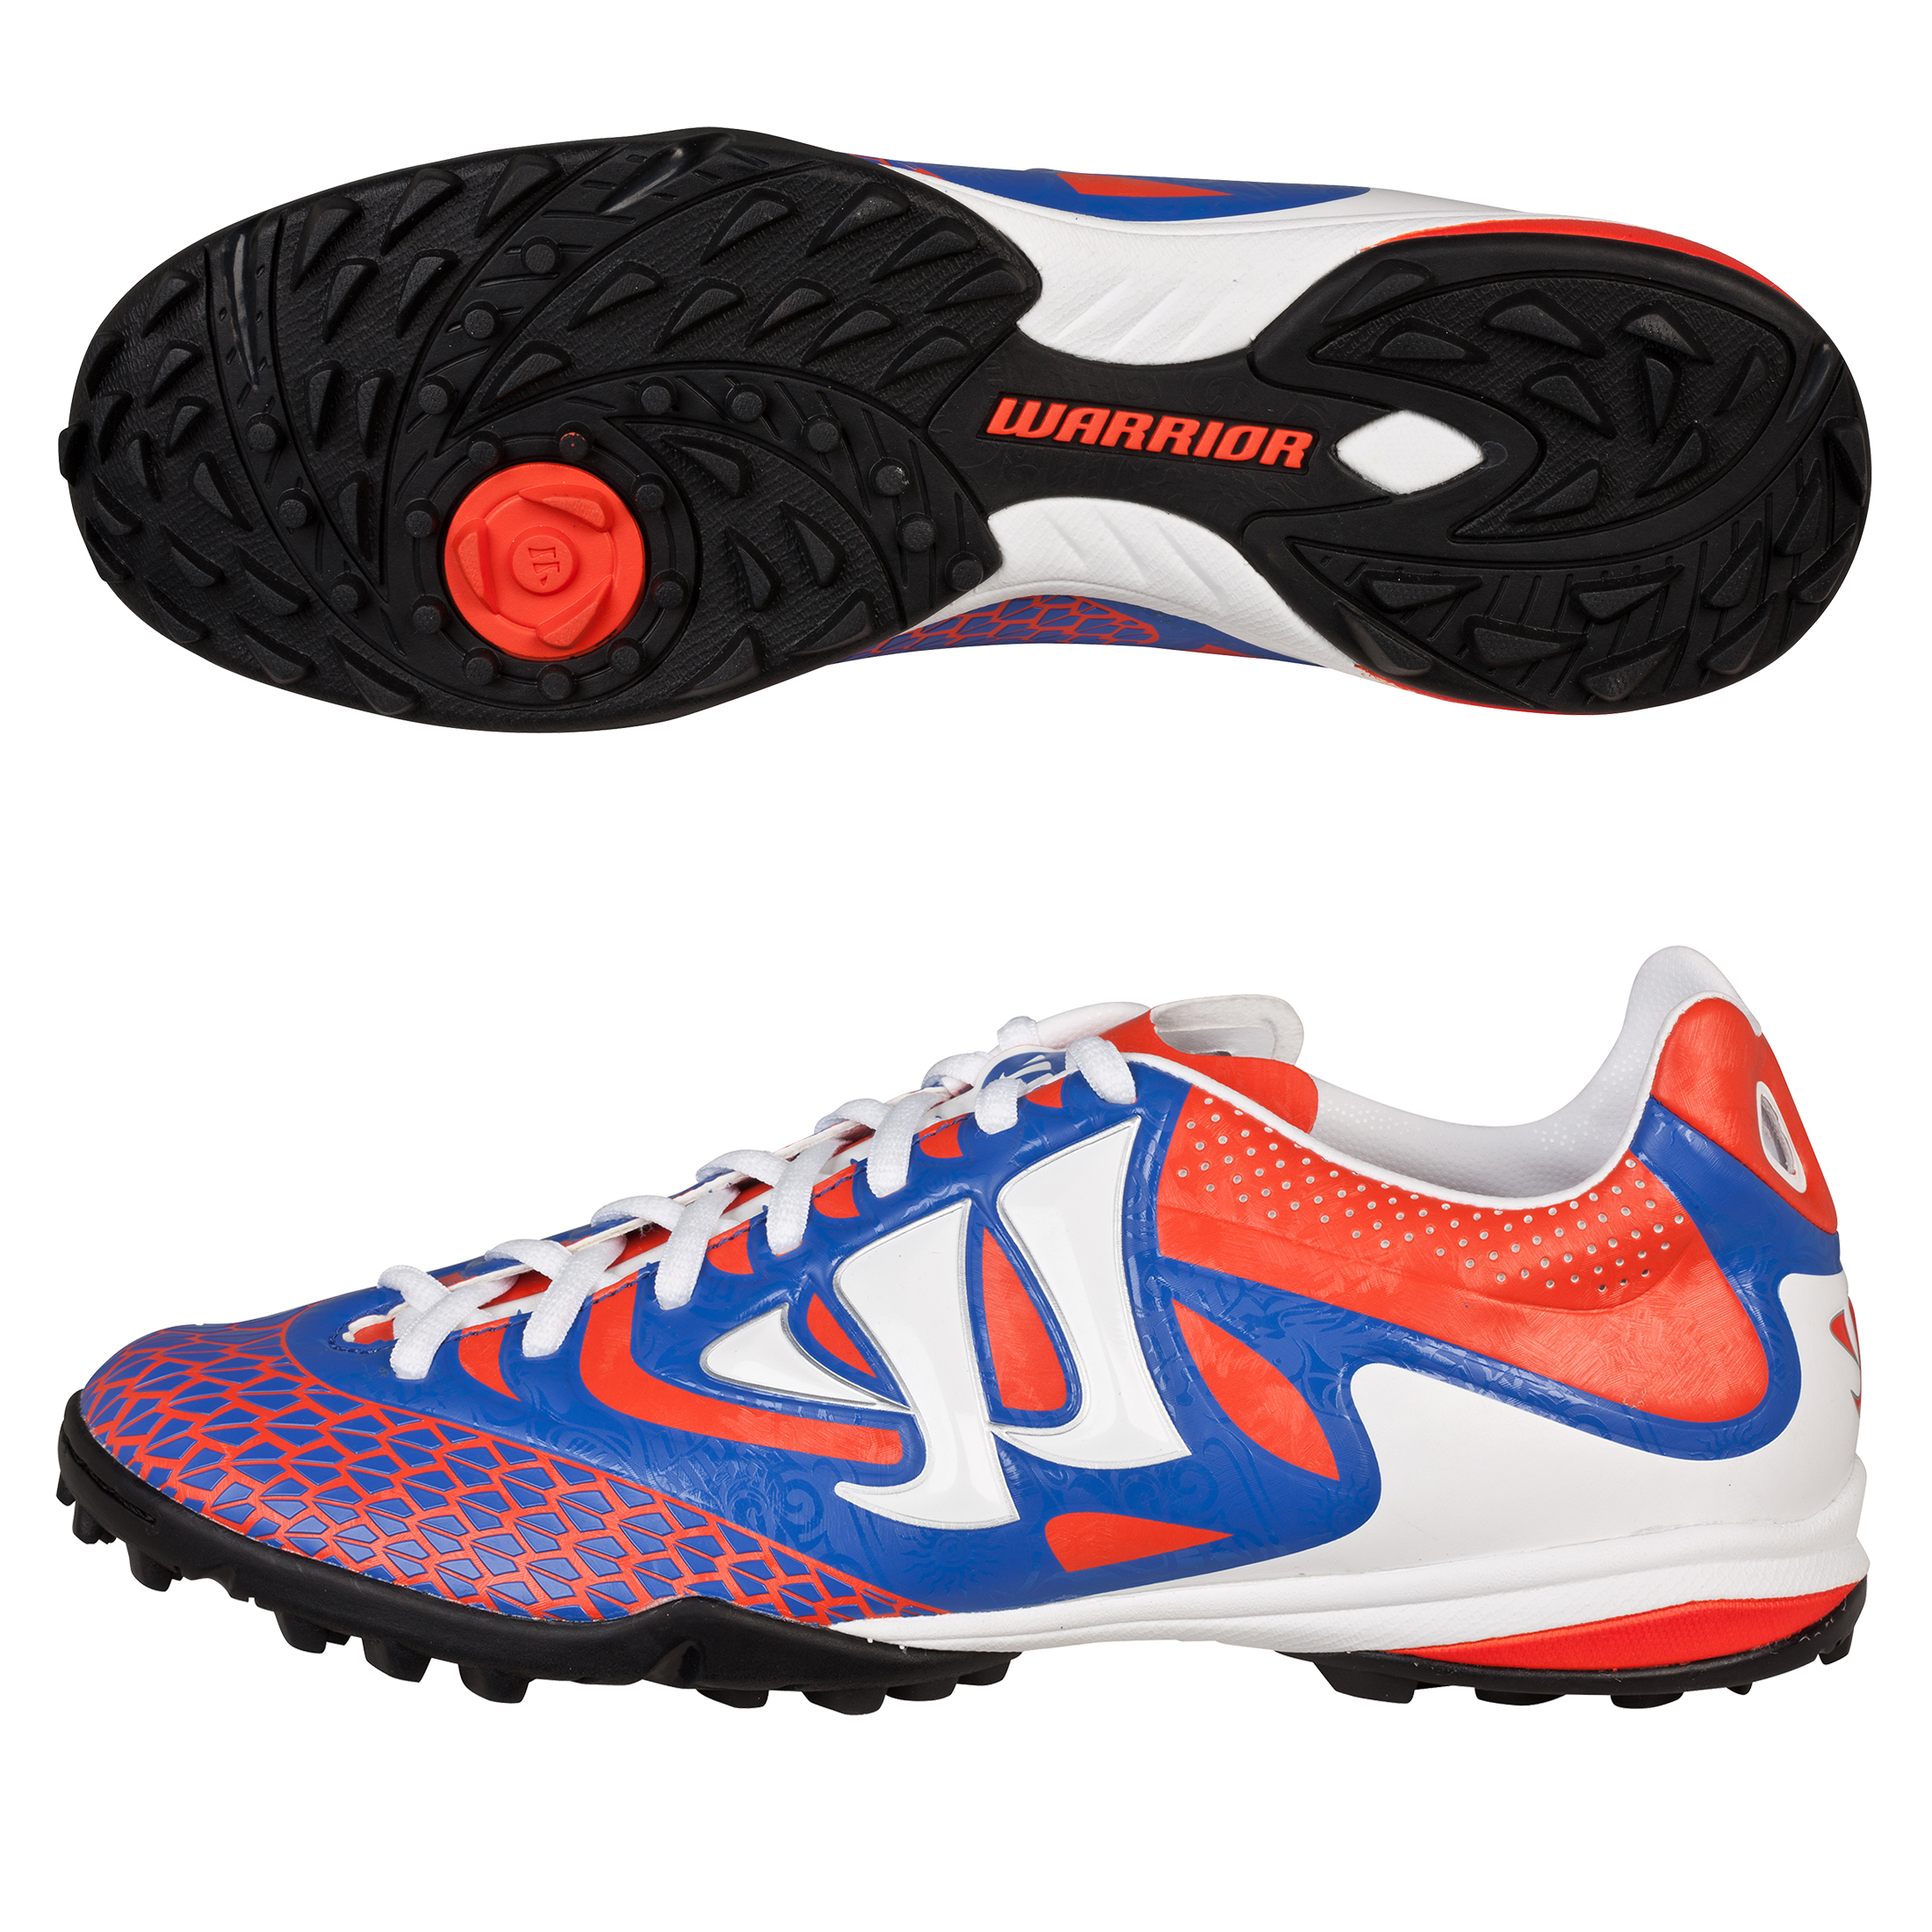 Warrior Sports Skreamer Combat Astroturf Trainers - Spicy Orange/Baja Blue/White - Kids